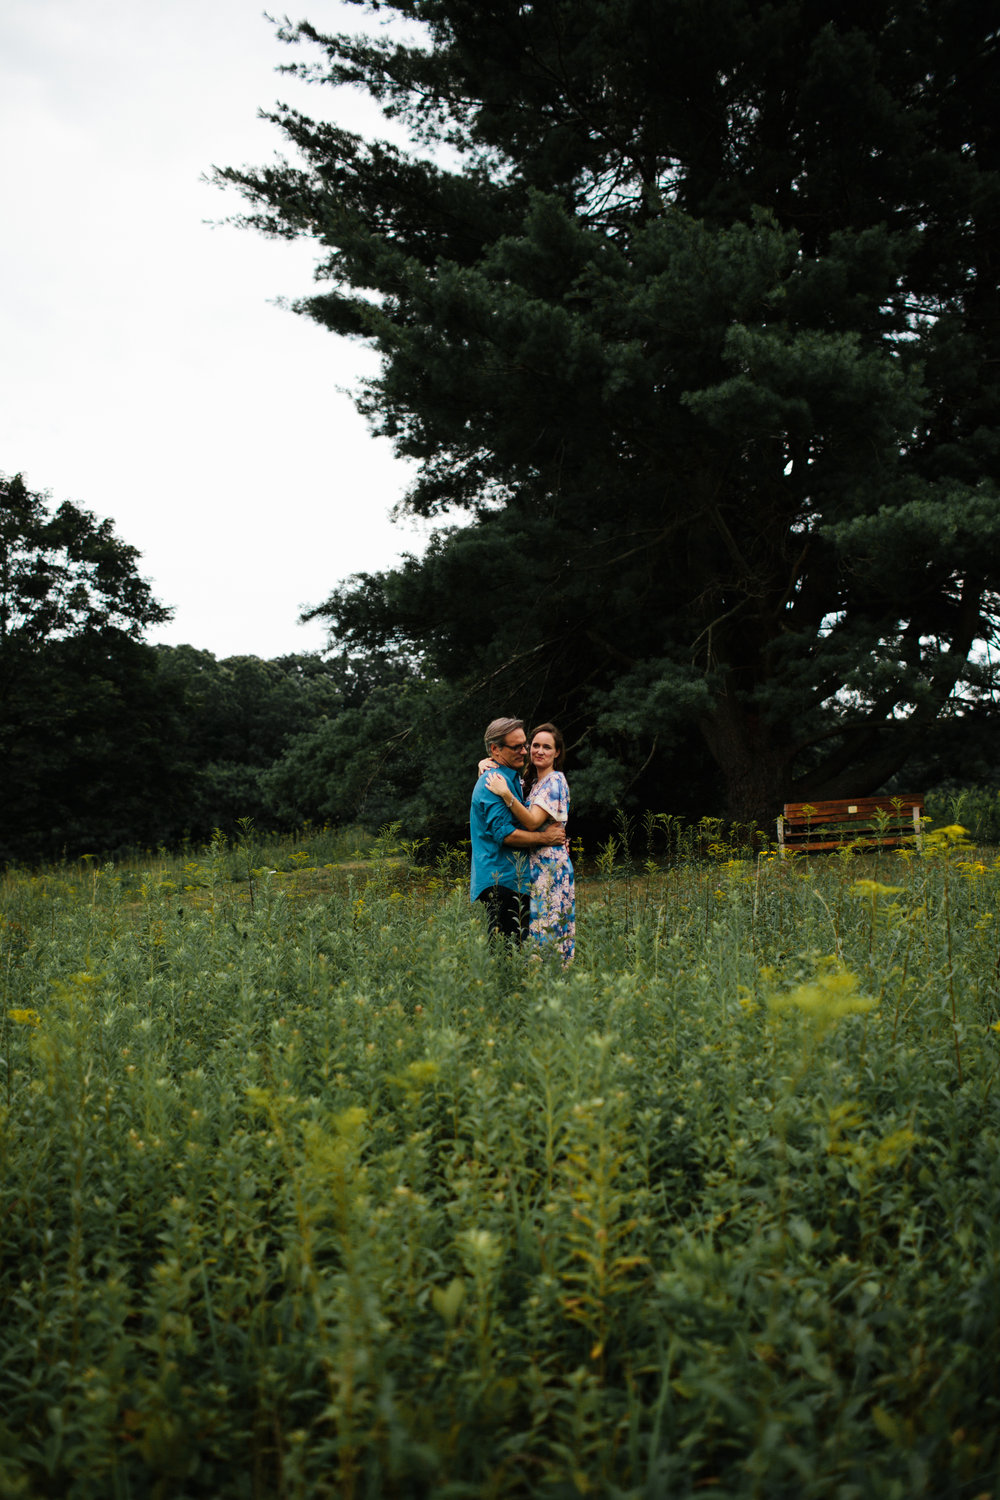 maine-engagement-shoot-7230.jpg